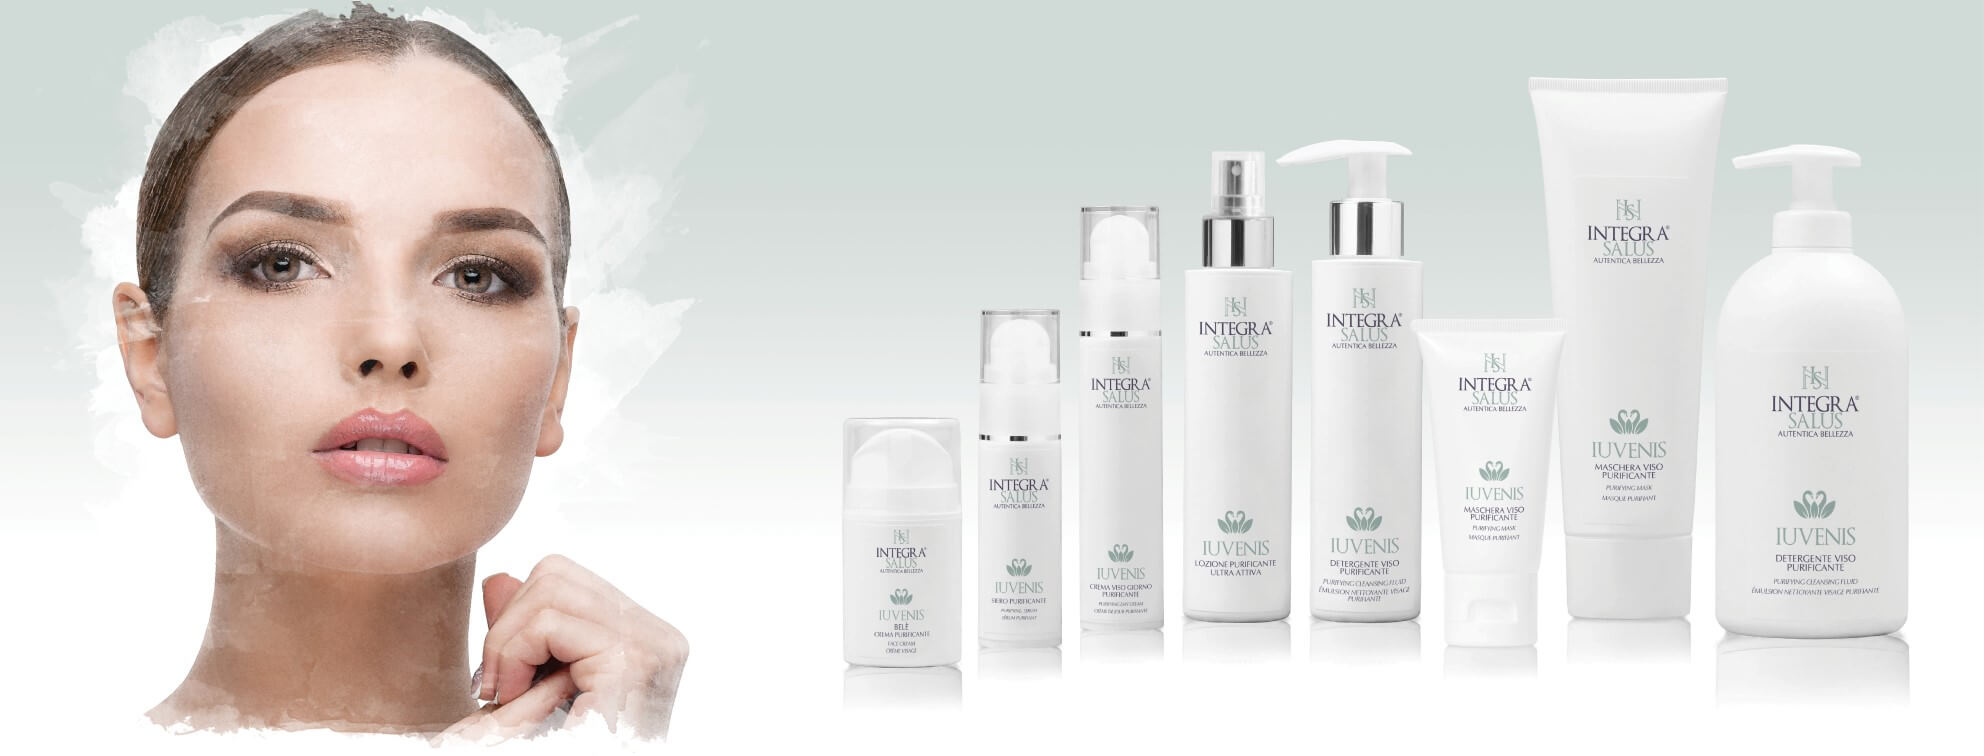 Iuvenis Family - Integra Salus Natural Cosmetics - Purifying